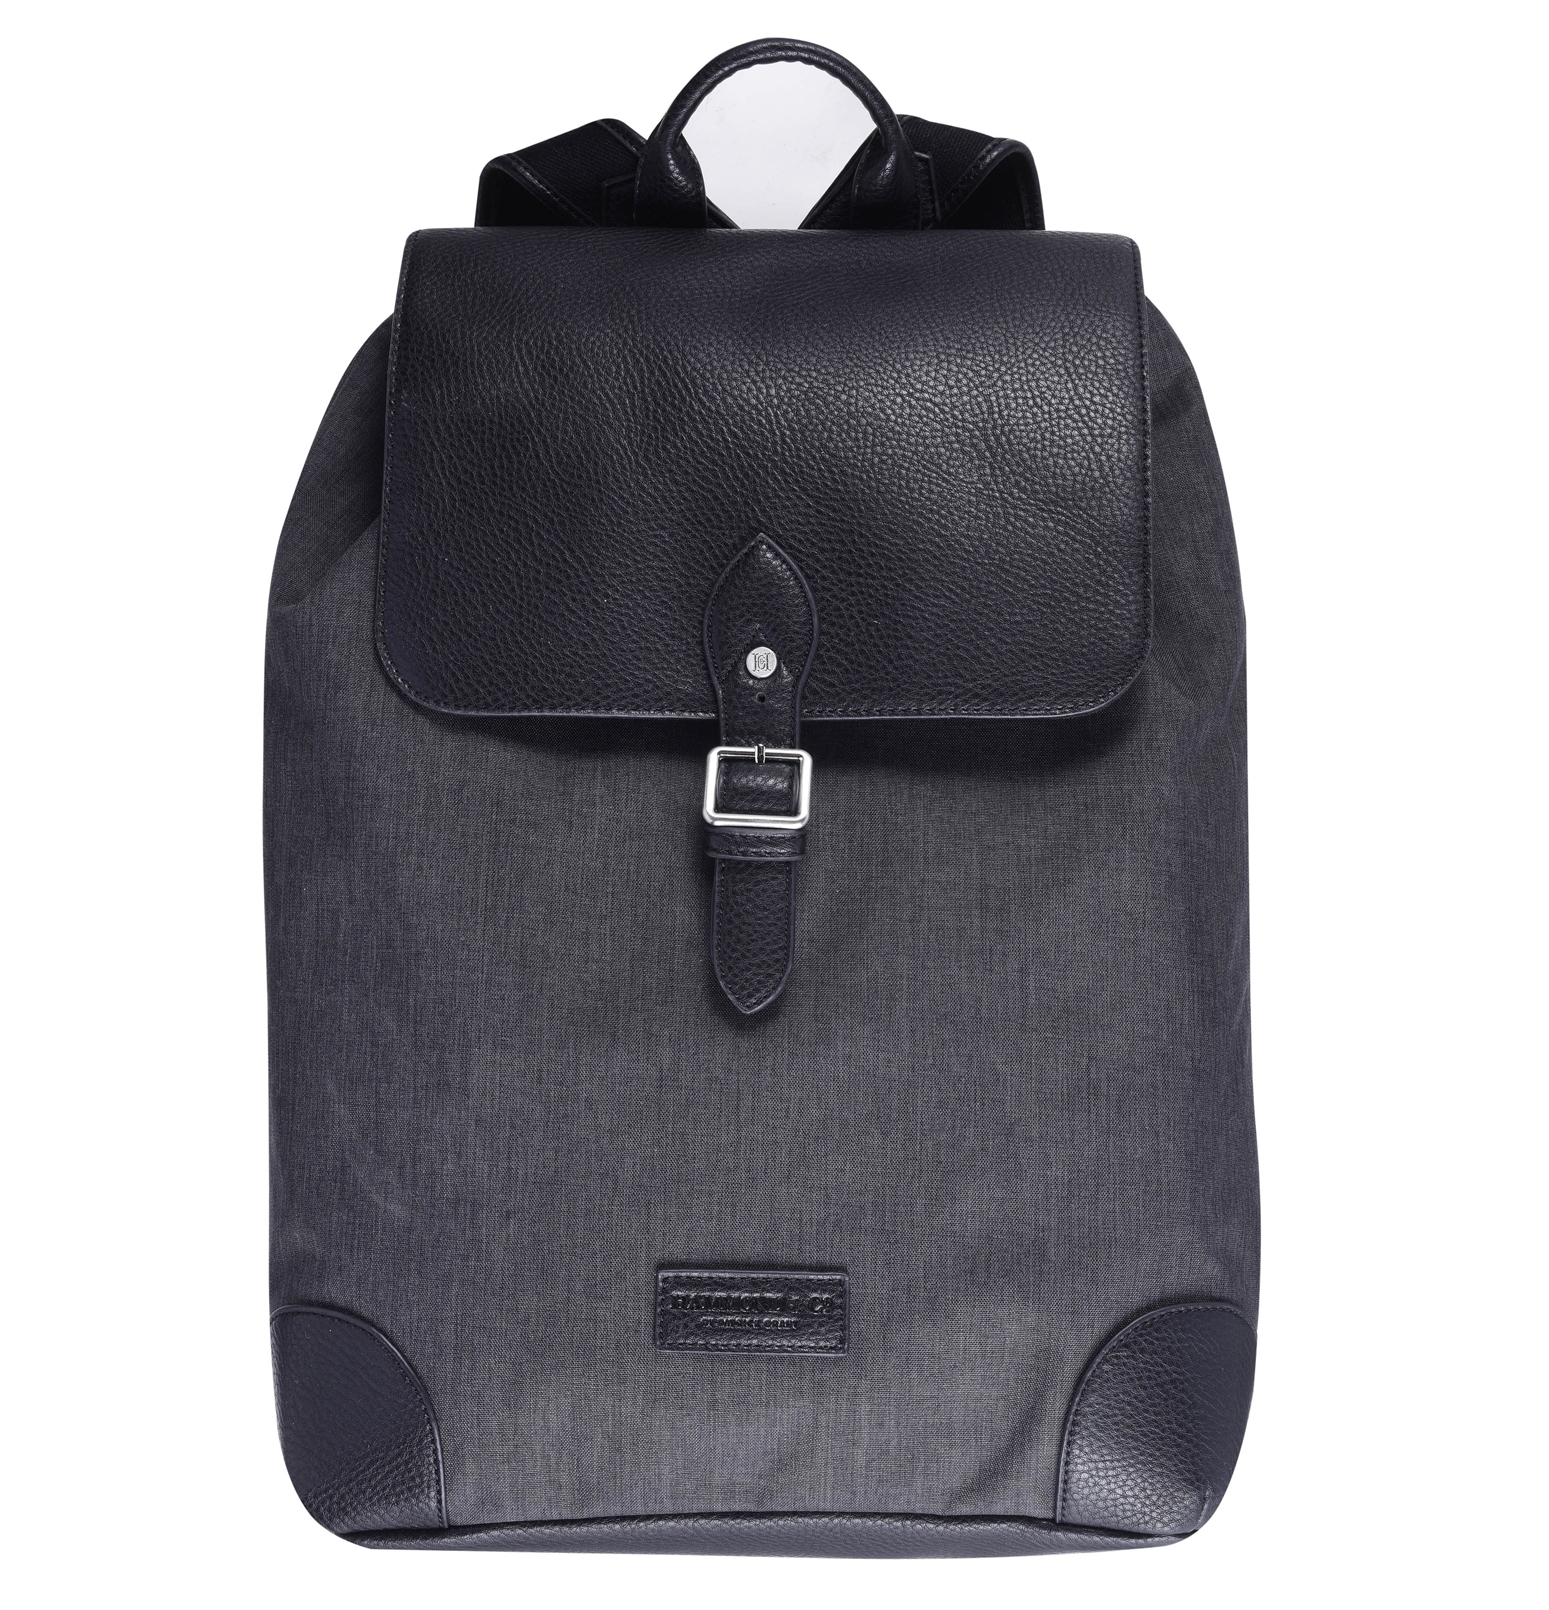 Hammond & Co by Patrick Grant Grey Backpack (Debenhams/PA)